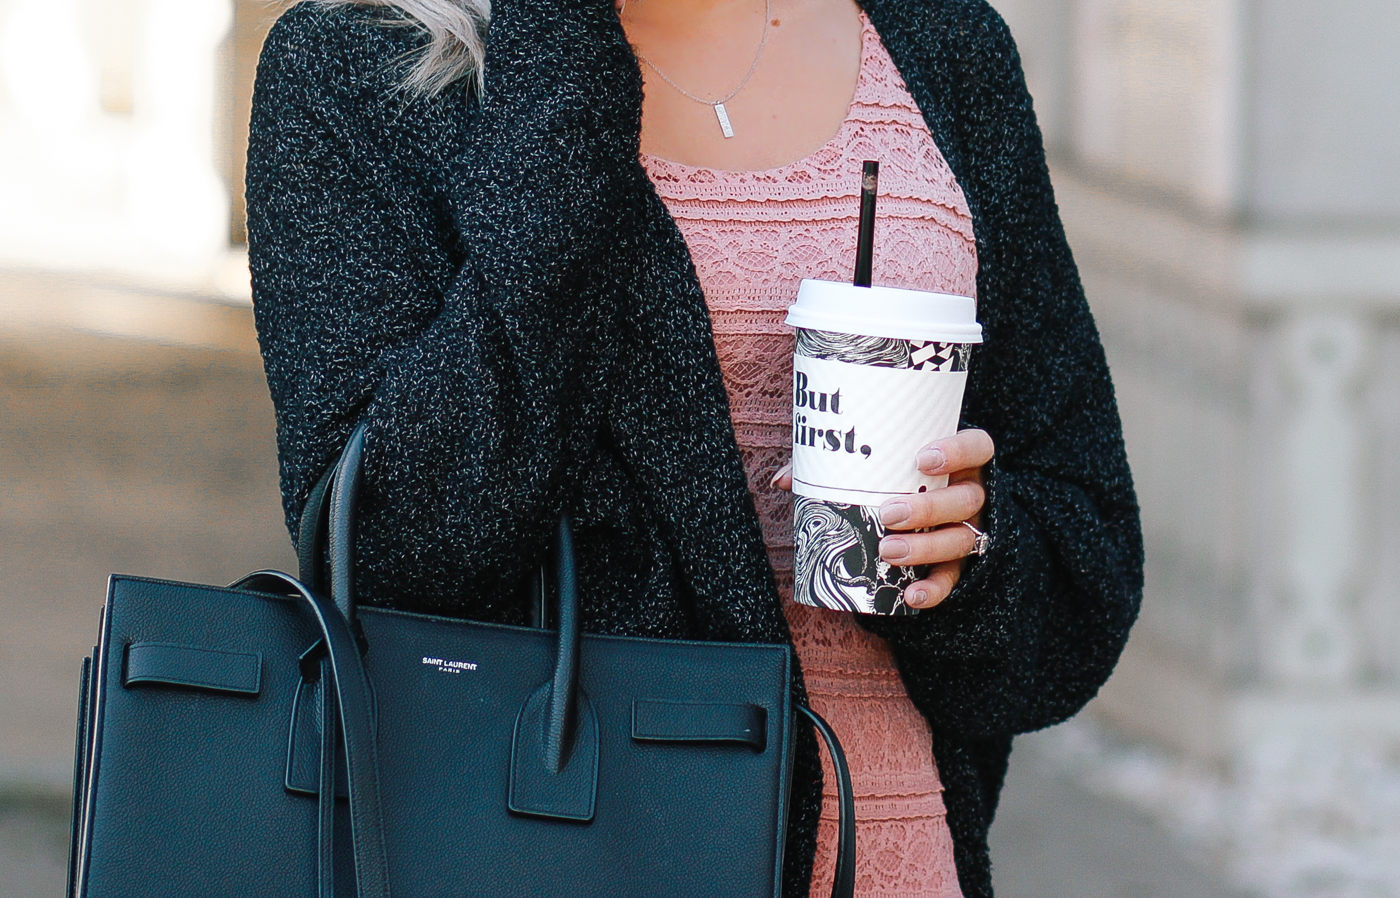 Blondie in the City | Dusty Rose Crochet Dress & @urbanooutfitters Cardigan | Saint Laurent Bag